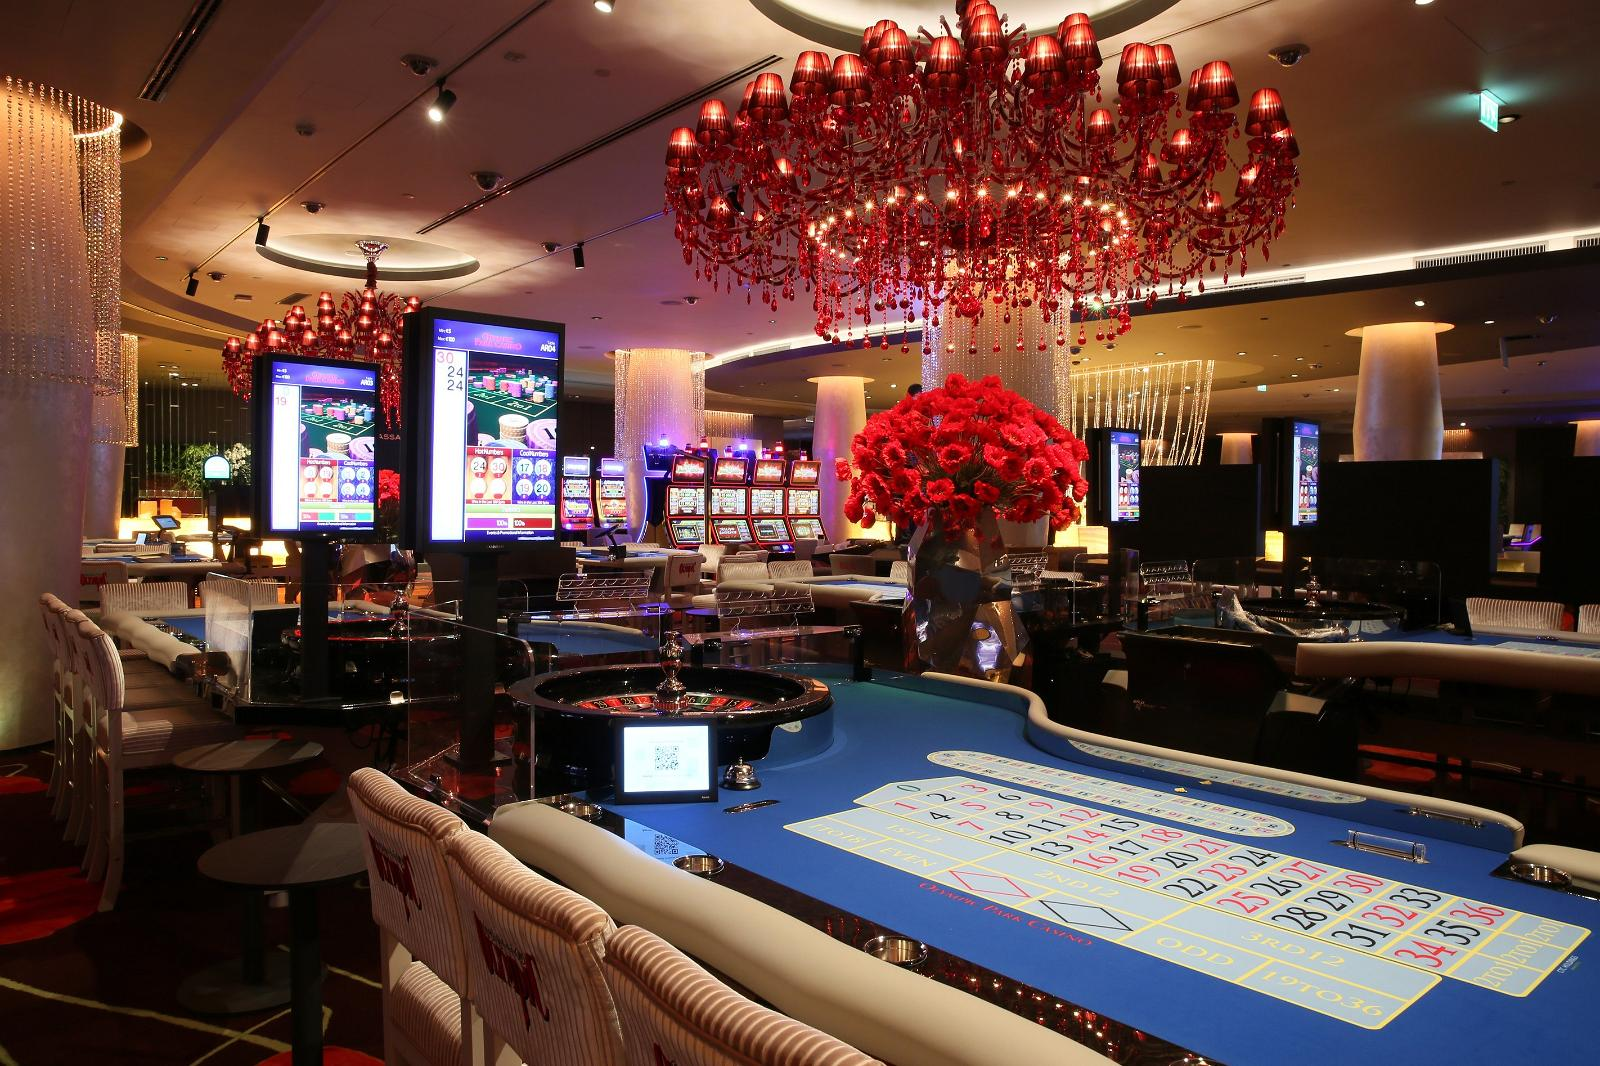 olympic-park-casino-roulette-table-game-tallinn-estonia